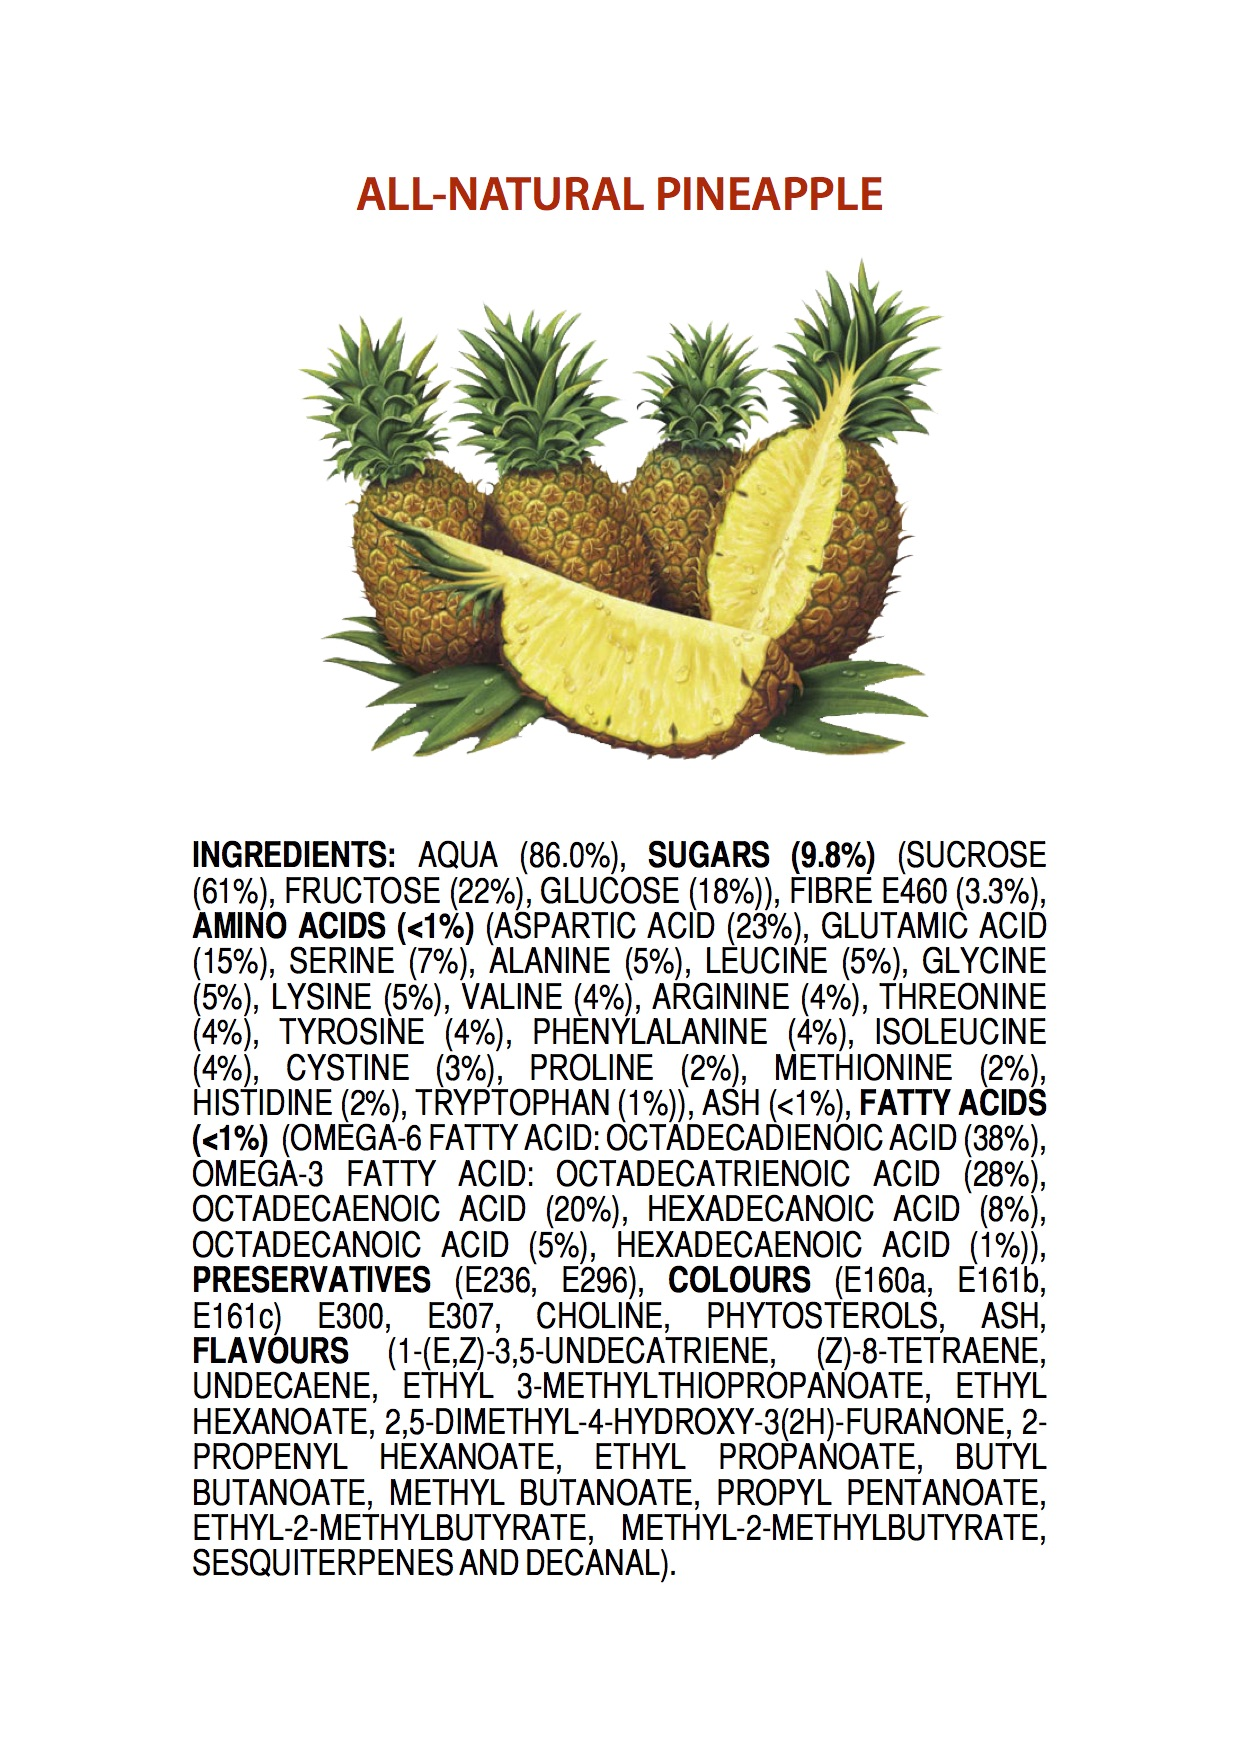 Ingredients of an All-Natural Pineapple ENGLISH